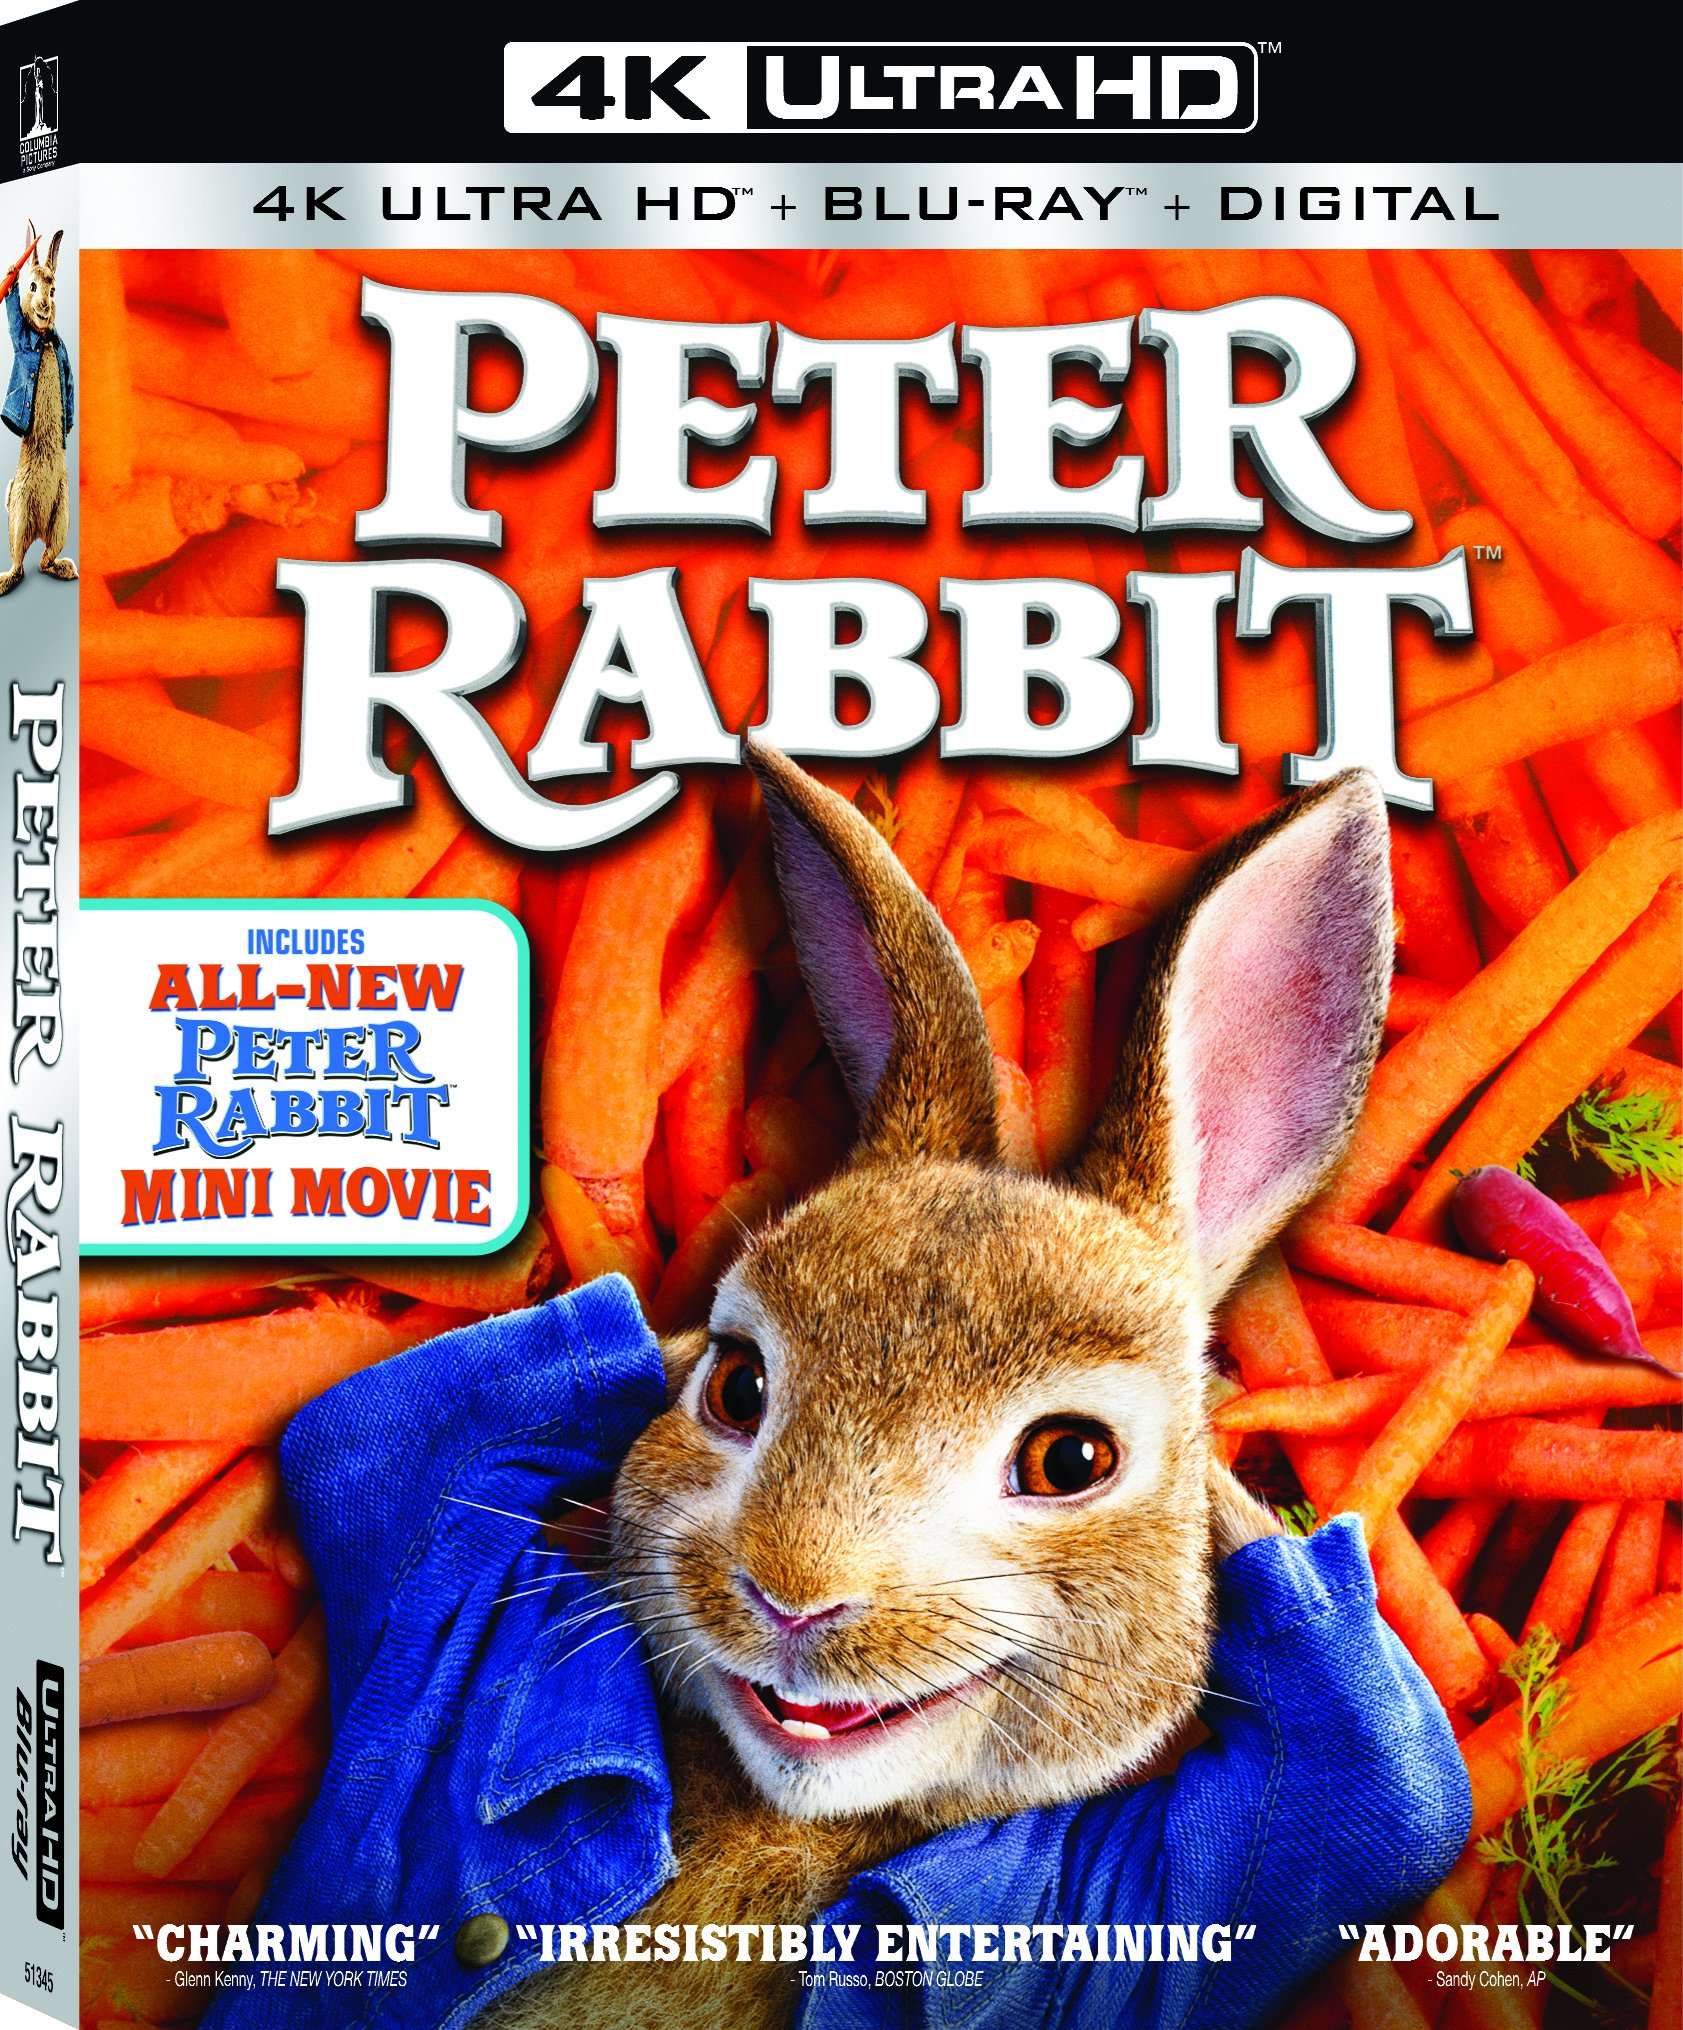 4K Blu-ray : Peter Rabbit (With Blu-Ray, 4K Mastering, Widescreen, Subtitled, Dubbed)